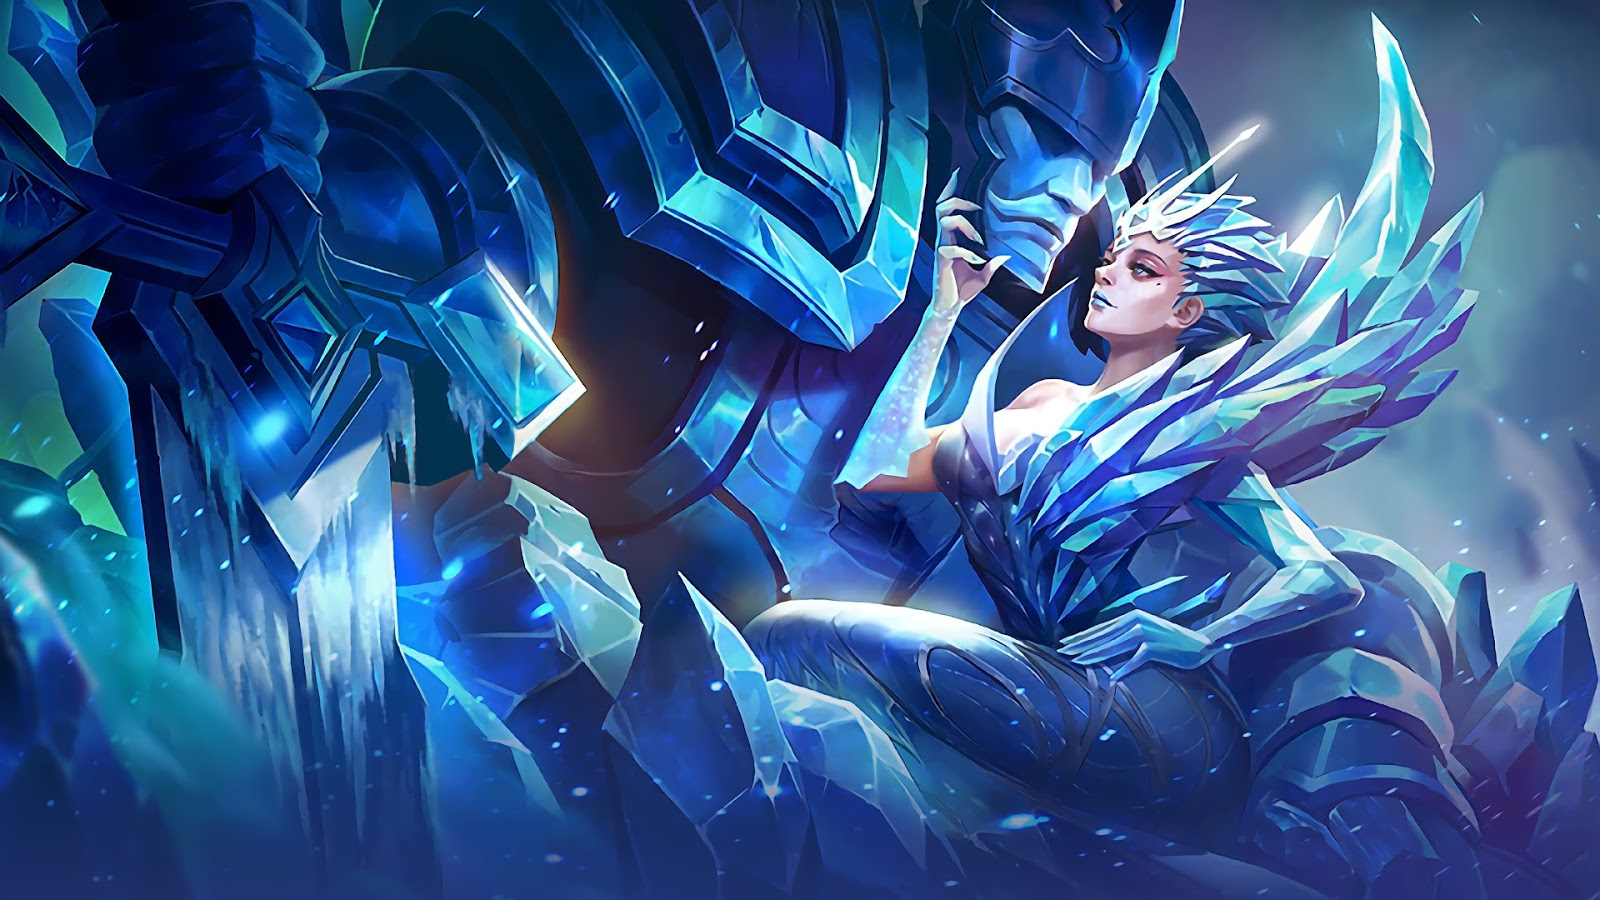 Wallpaper Aurora Queen of the North Skin Mobile Legends HD for PC